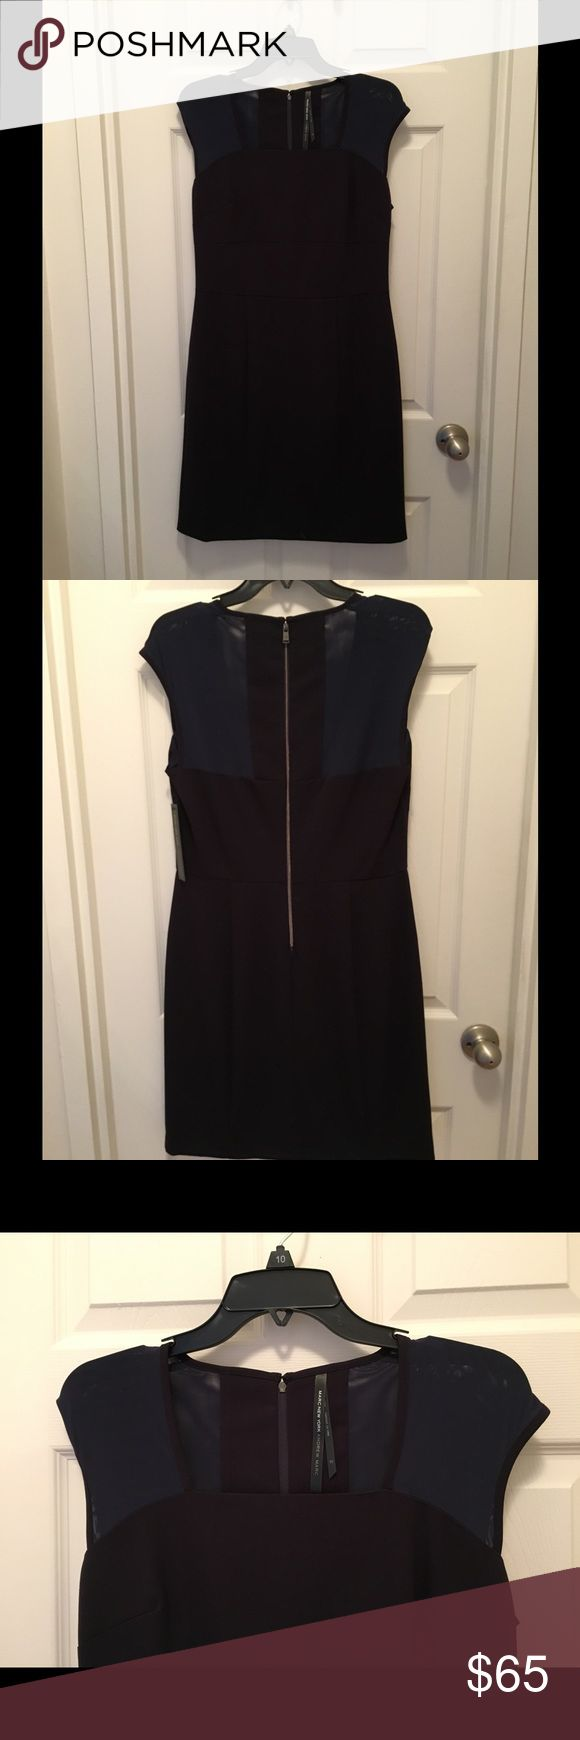 NWT Andrew Marc Sheath Dress Marc New York Andrew Marc Sheath Dress. Black with midnight navy mesh at shoulders front and back. Visible zipper in back. NWT Andrew Marc Dresses